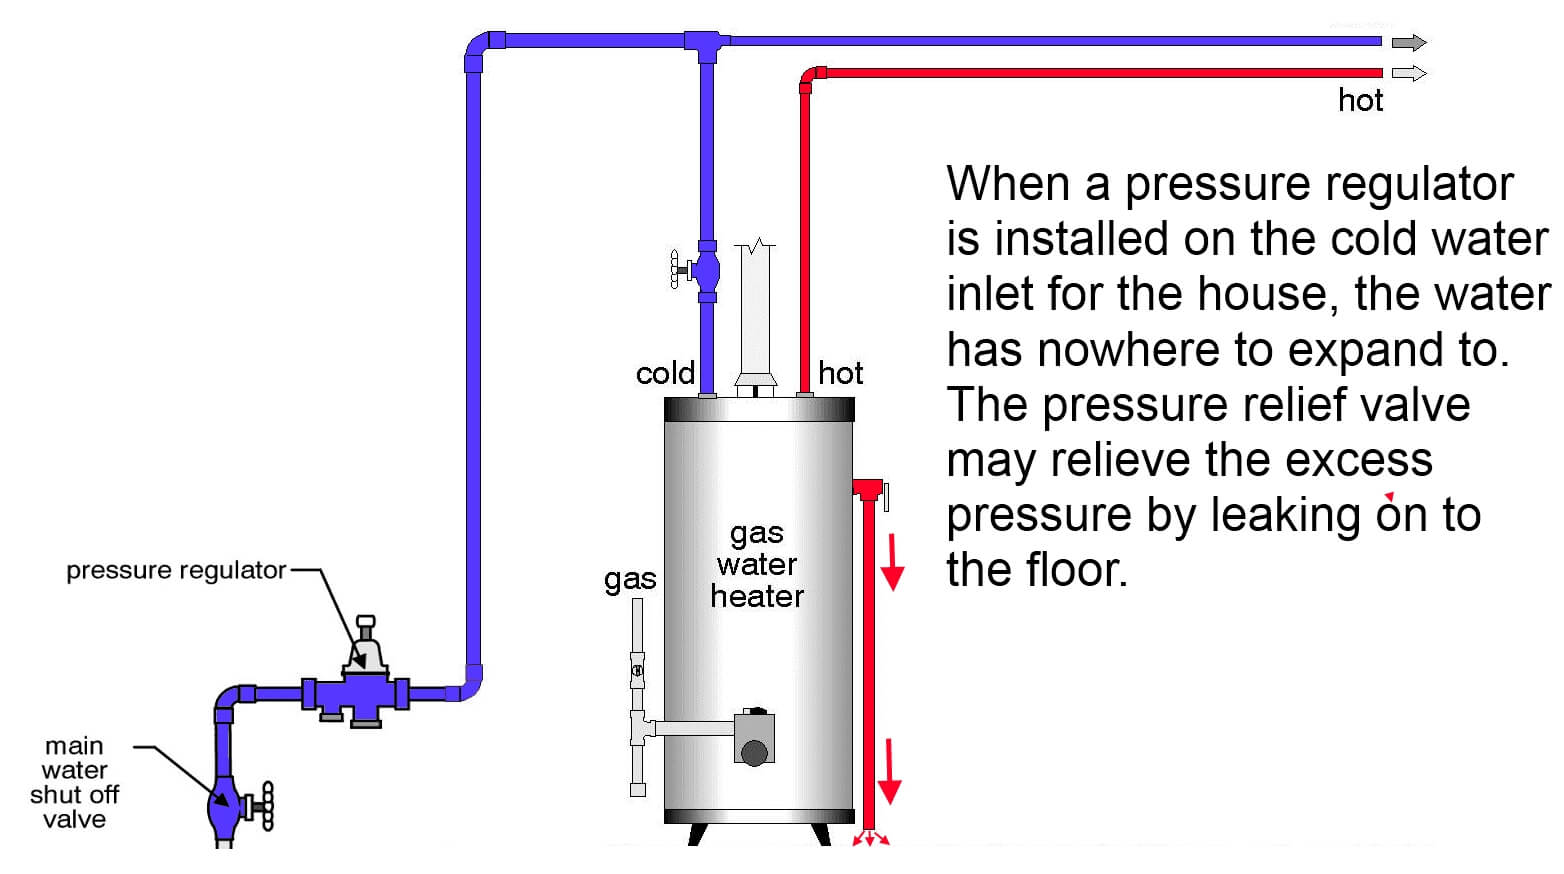 Why The Relief Valve At Water Heater Is Leaking And What To Do Leak Alarm Panel Wiring Diagram Pressure Regulator Prevents Expansion